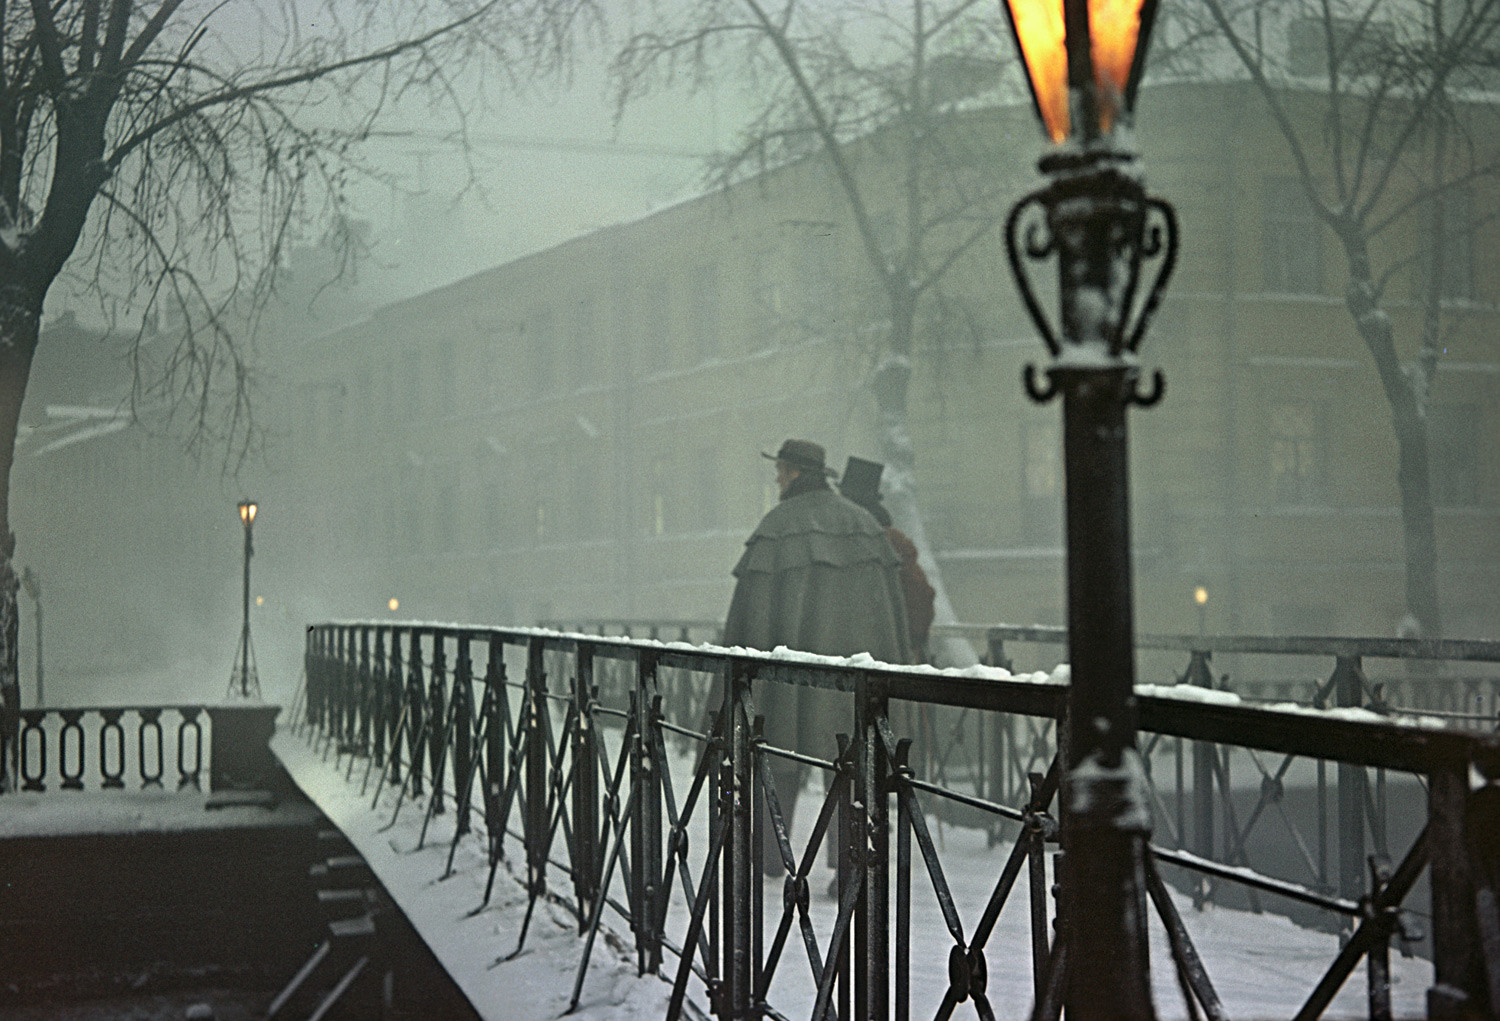 The streets of St. Petersburg as portrayed in the movie